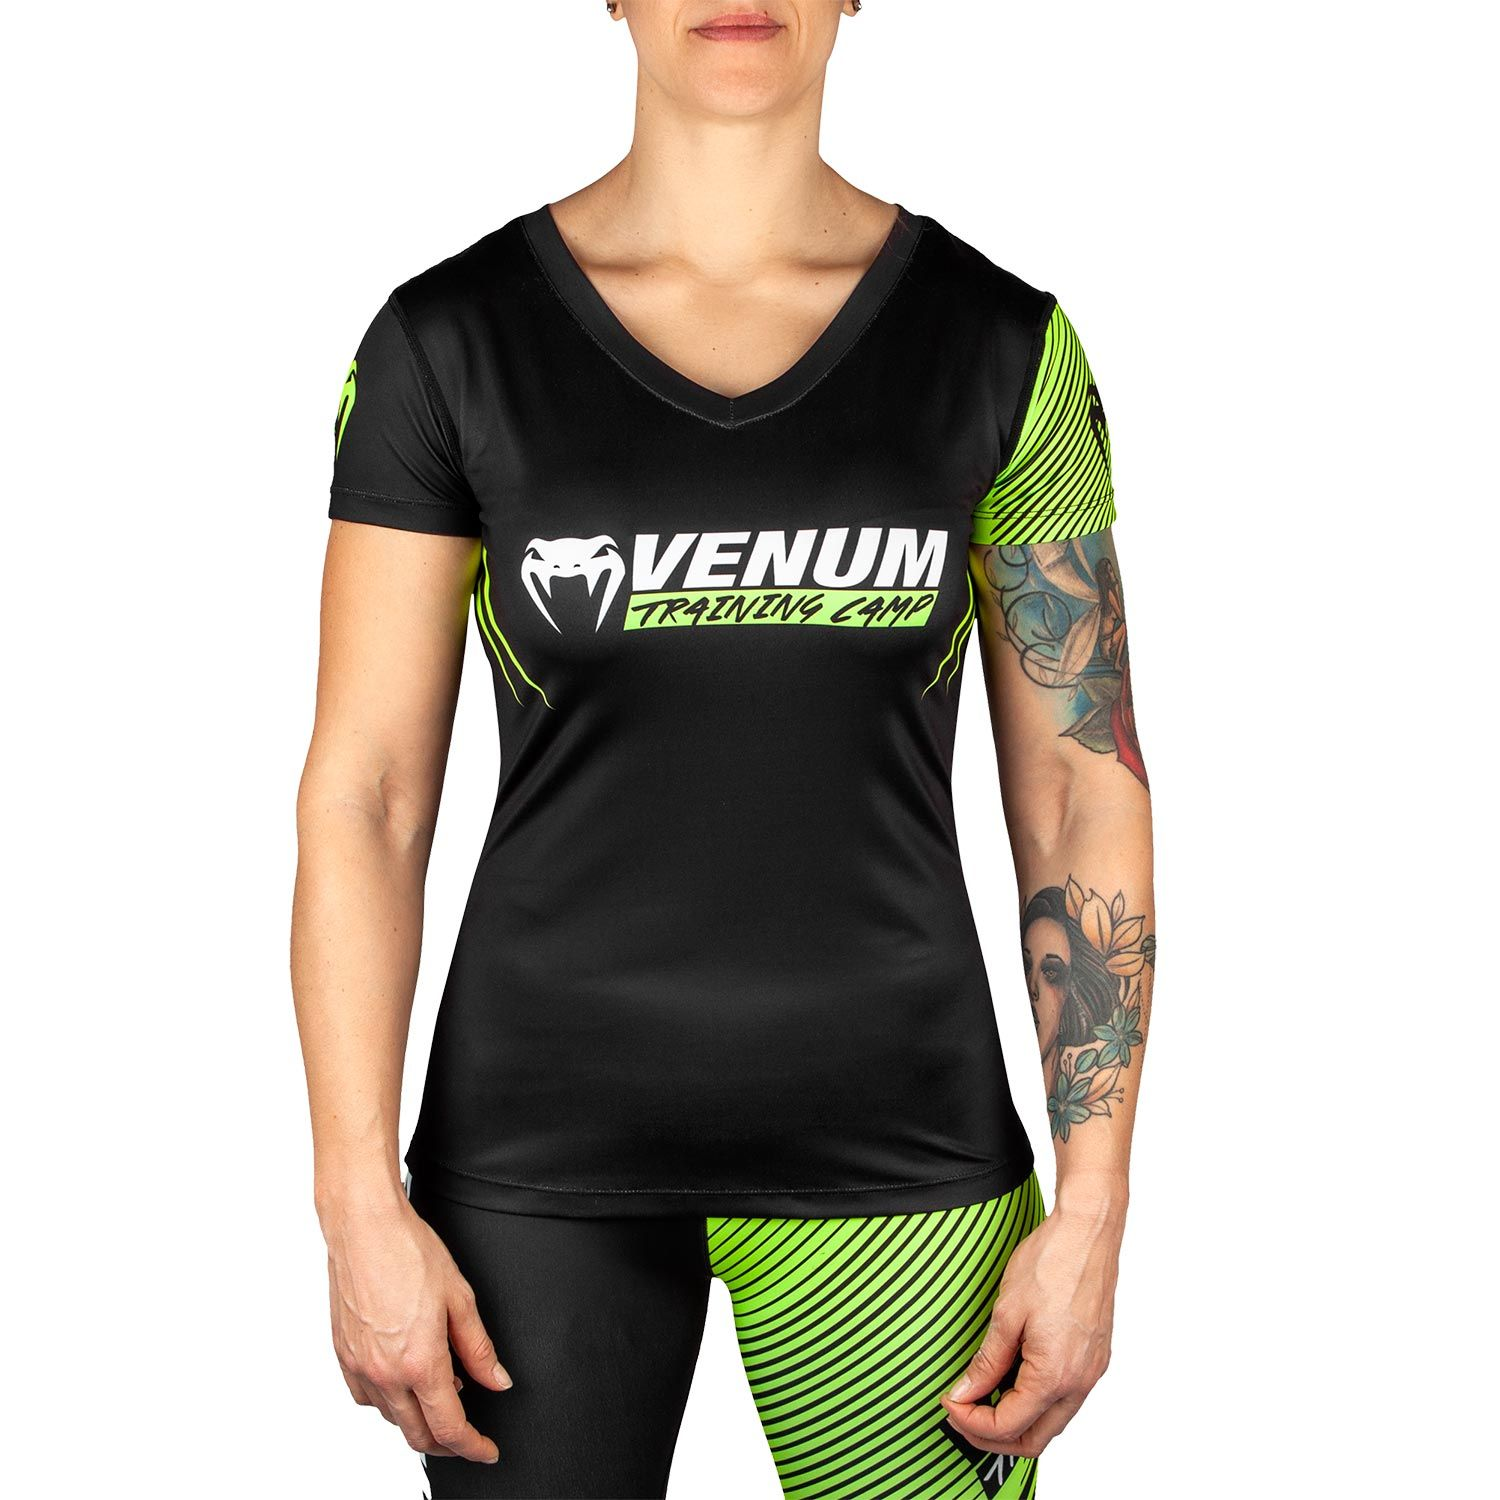 Camiseta Venum Training Camp 2.0 - Negro/Amarillo Fluo